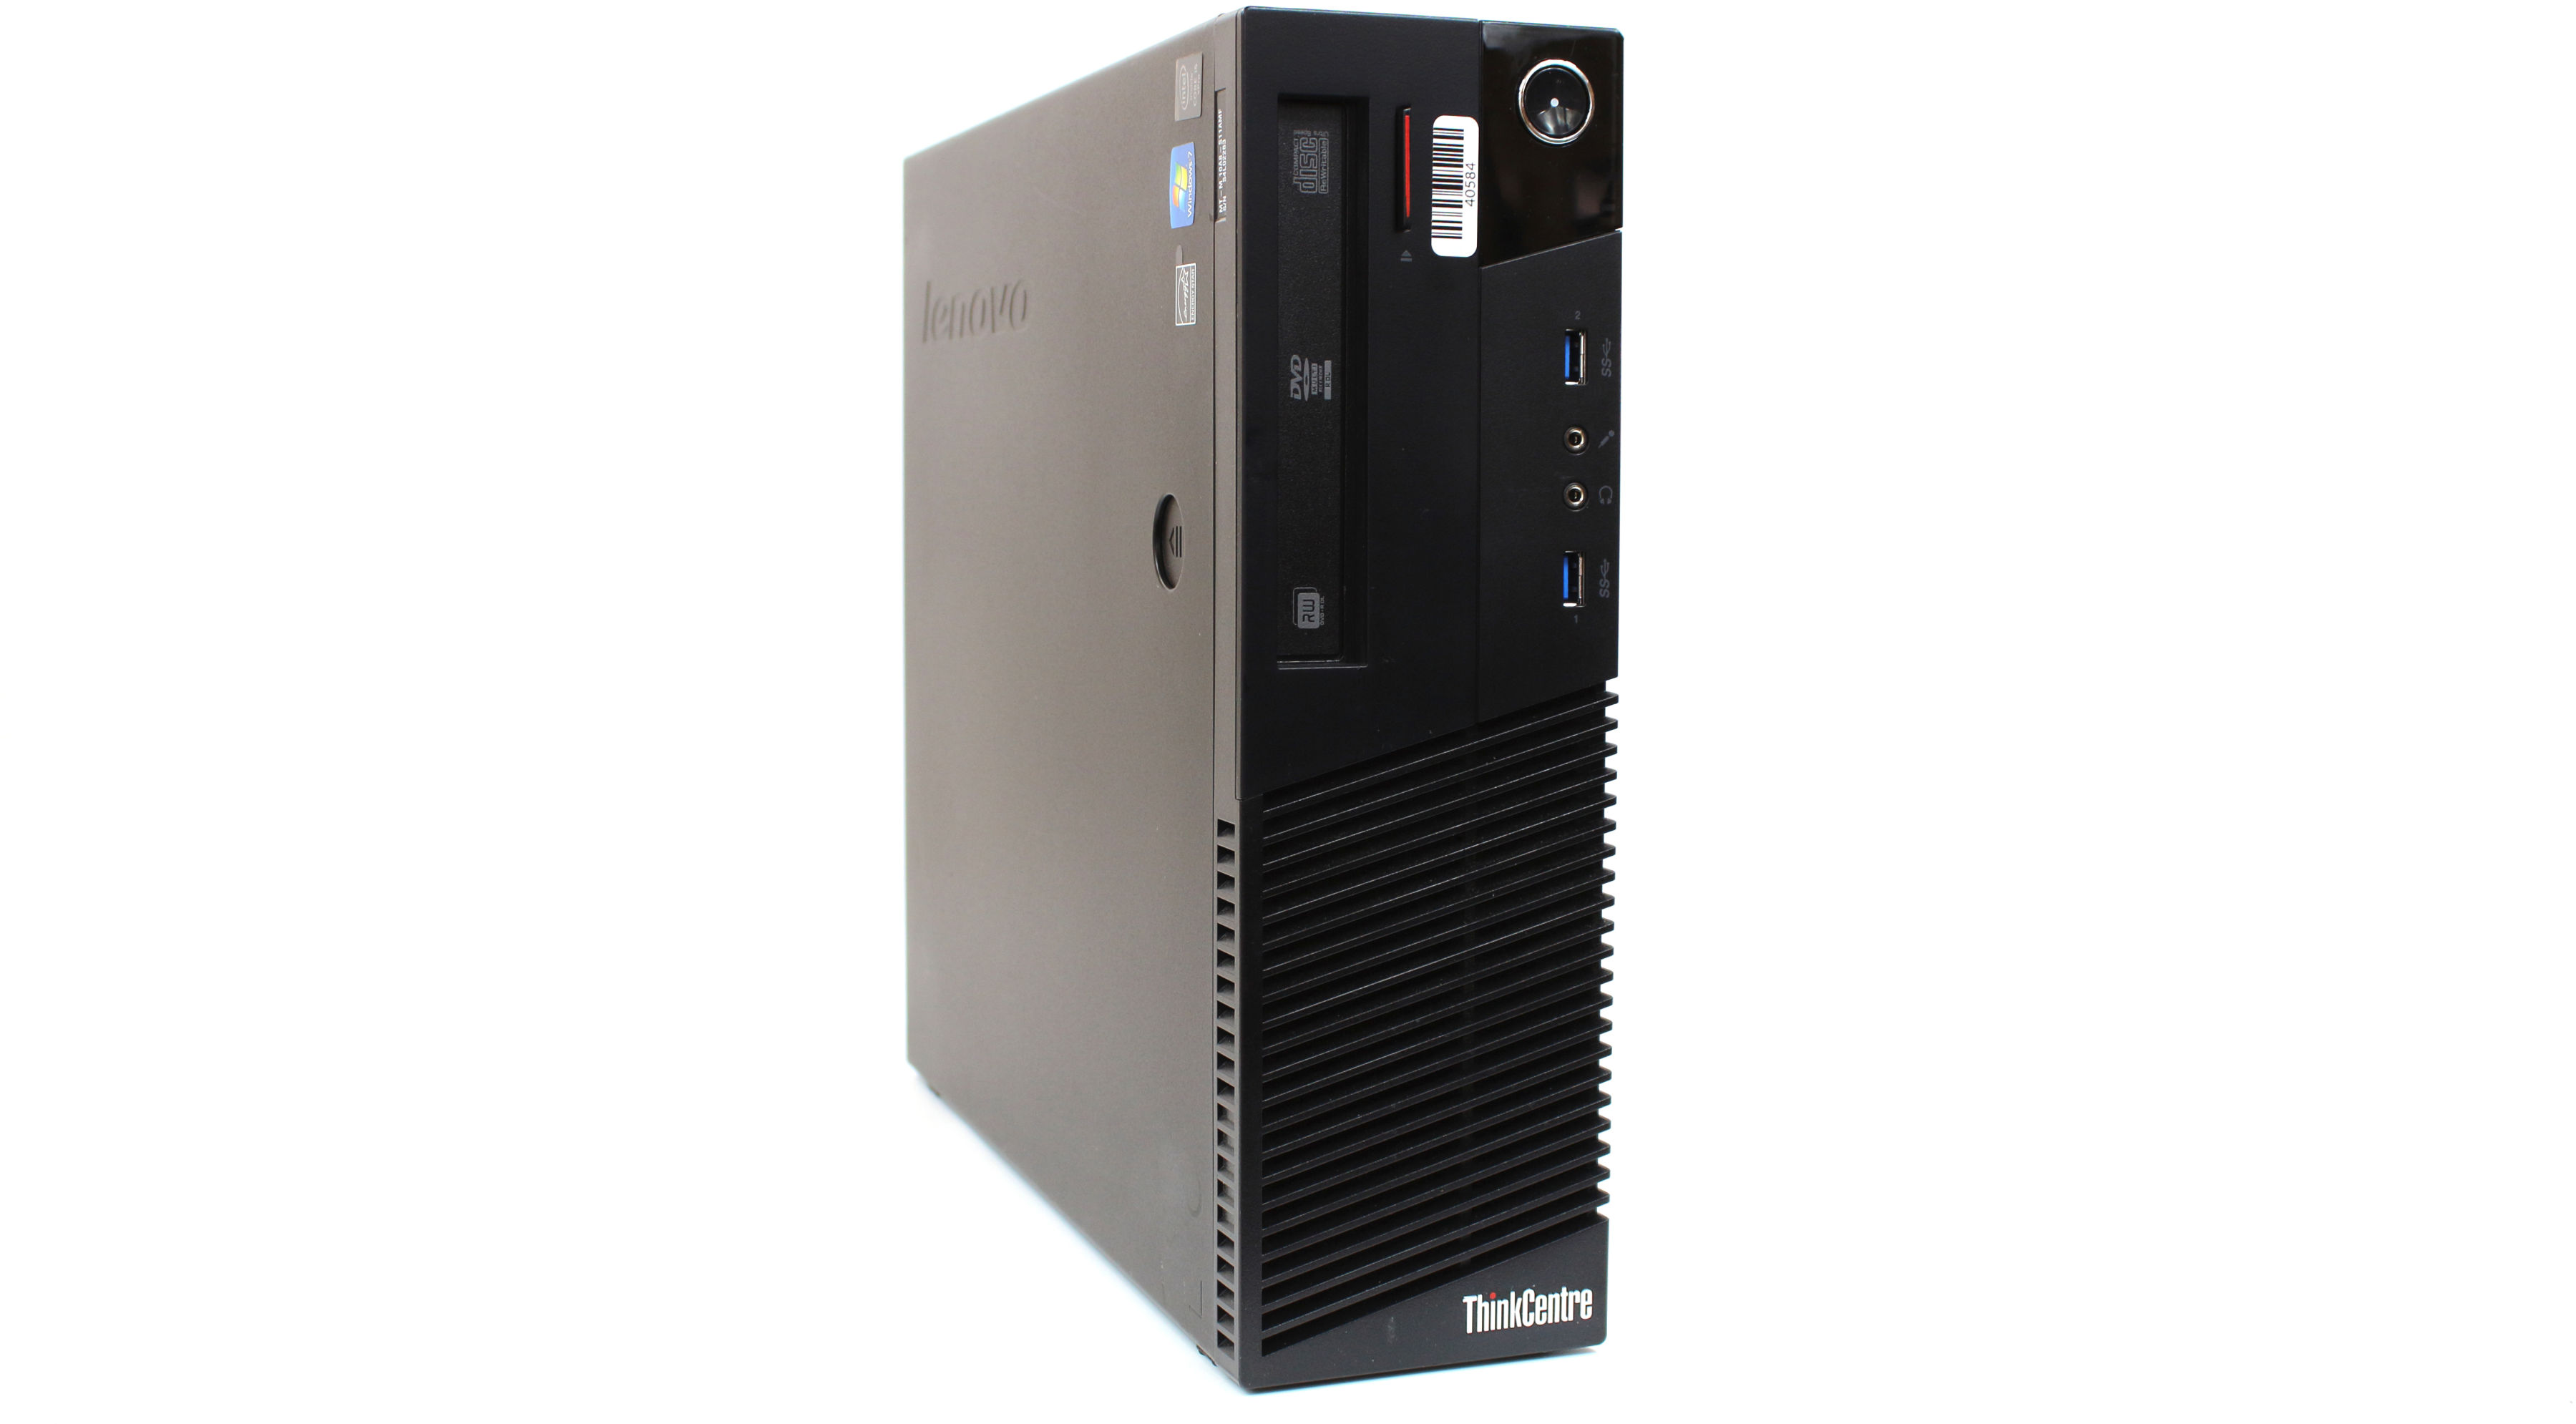 Komputer DESKTOP Lenovo ThinkCentre M93p Intel i5-4570 4x3.60GHz 4GB 500GB USB 3.0 - Windows 7 Professional